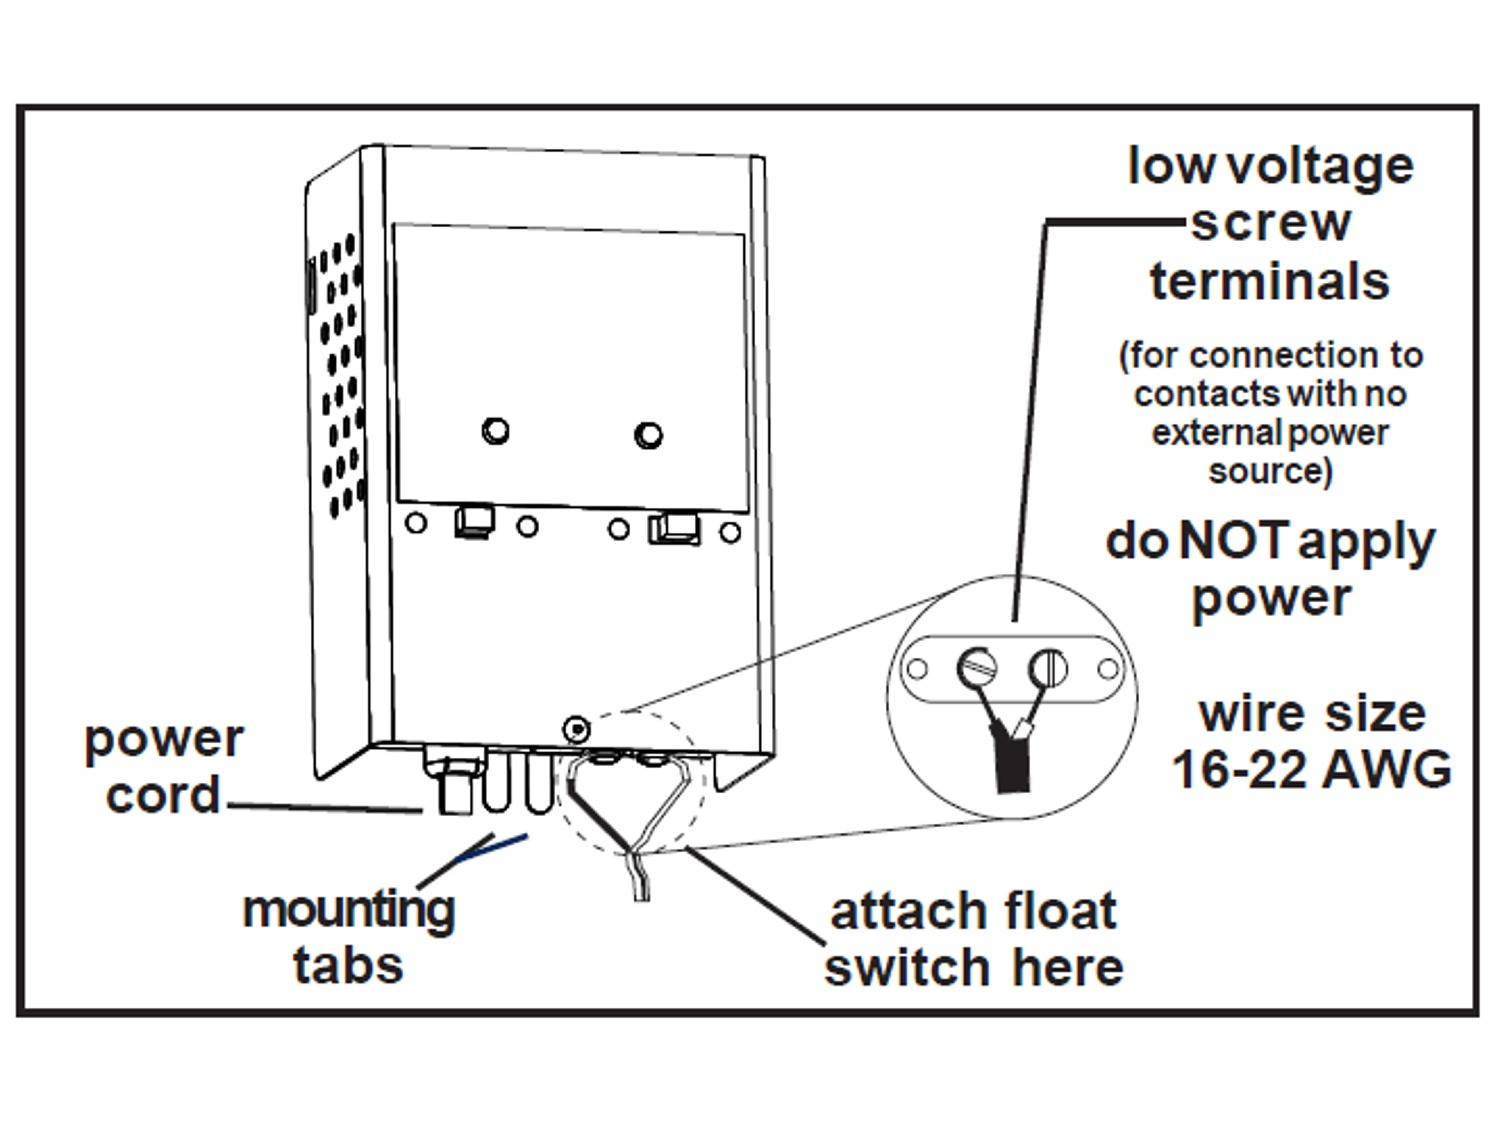 Wiring Diagram For Septic Pump And Floats : 41 Wiring